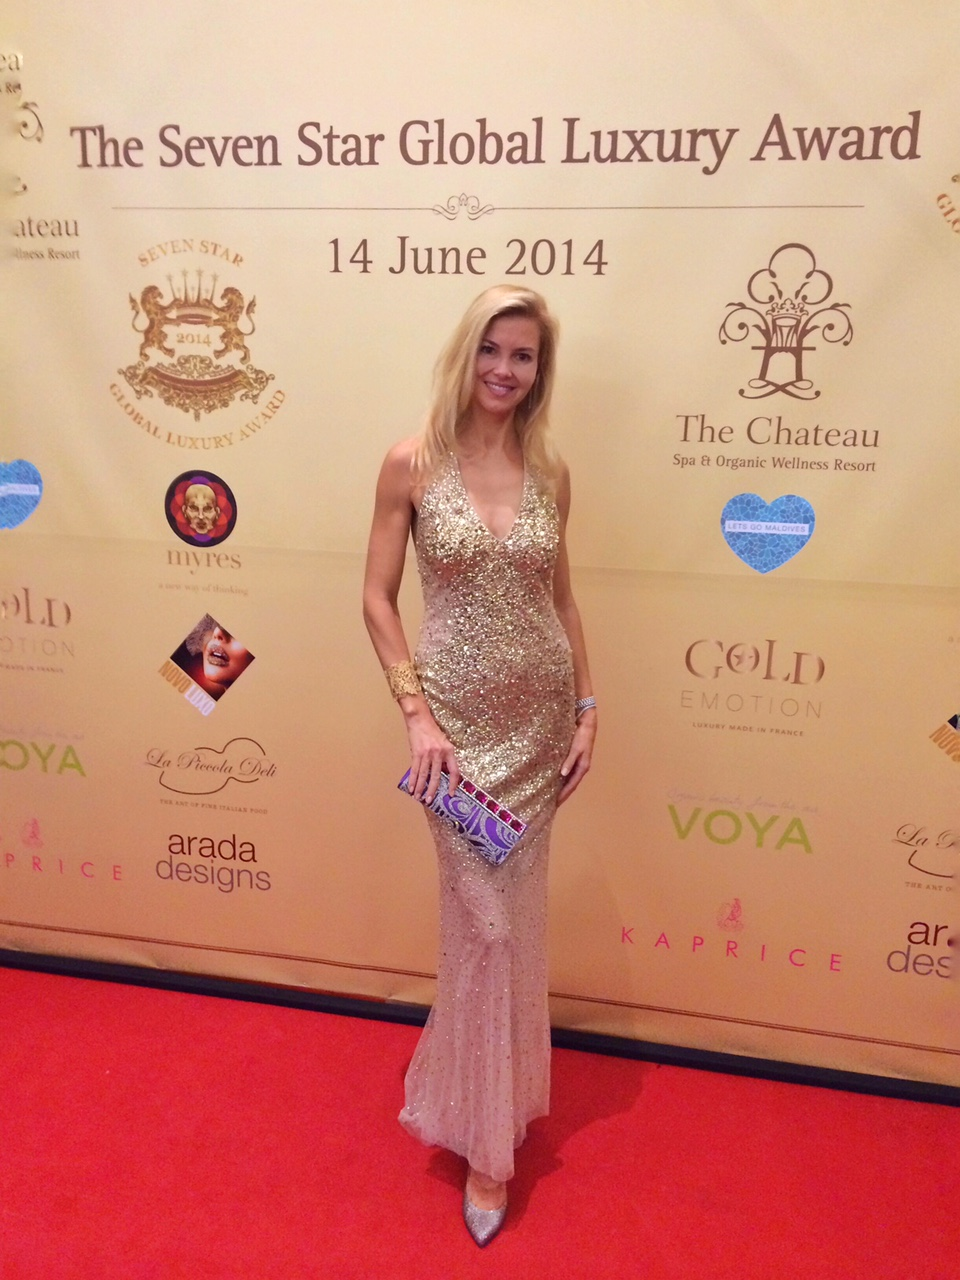 The Lux Traveller at The Seven Star Global Luxury Award in 2014